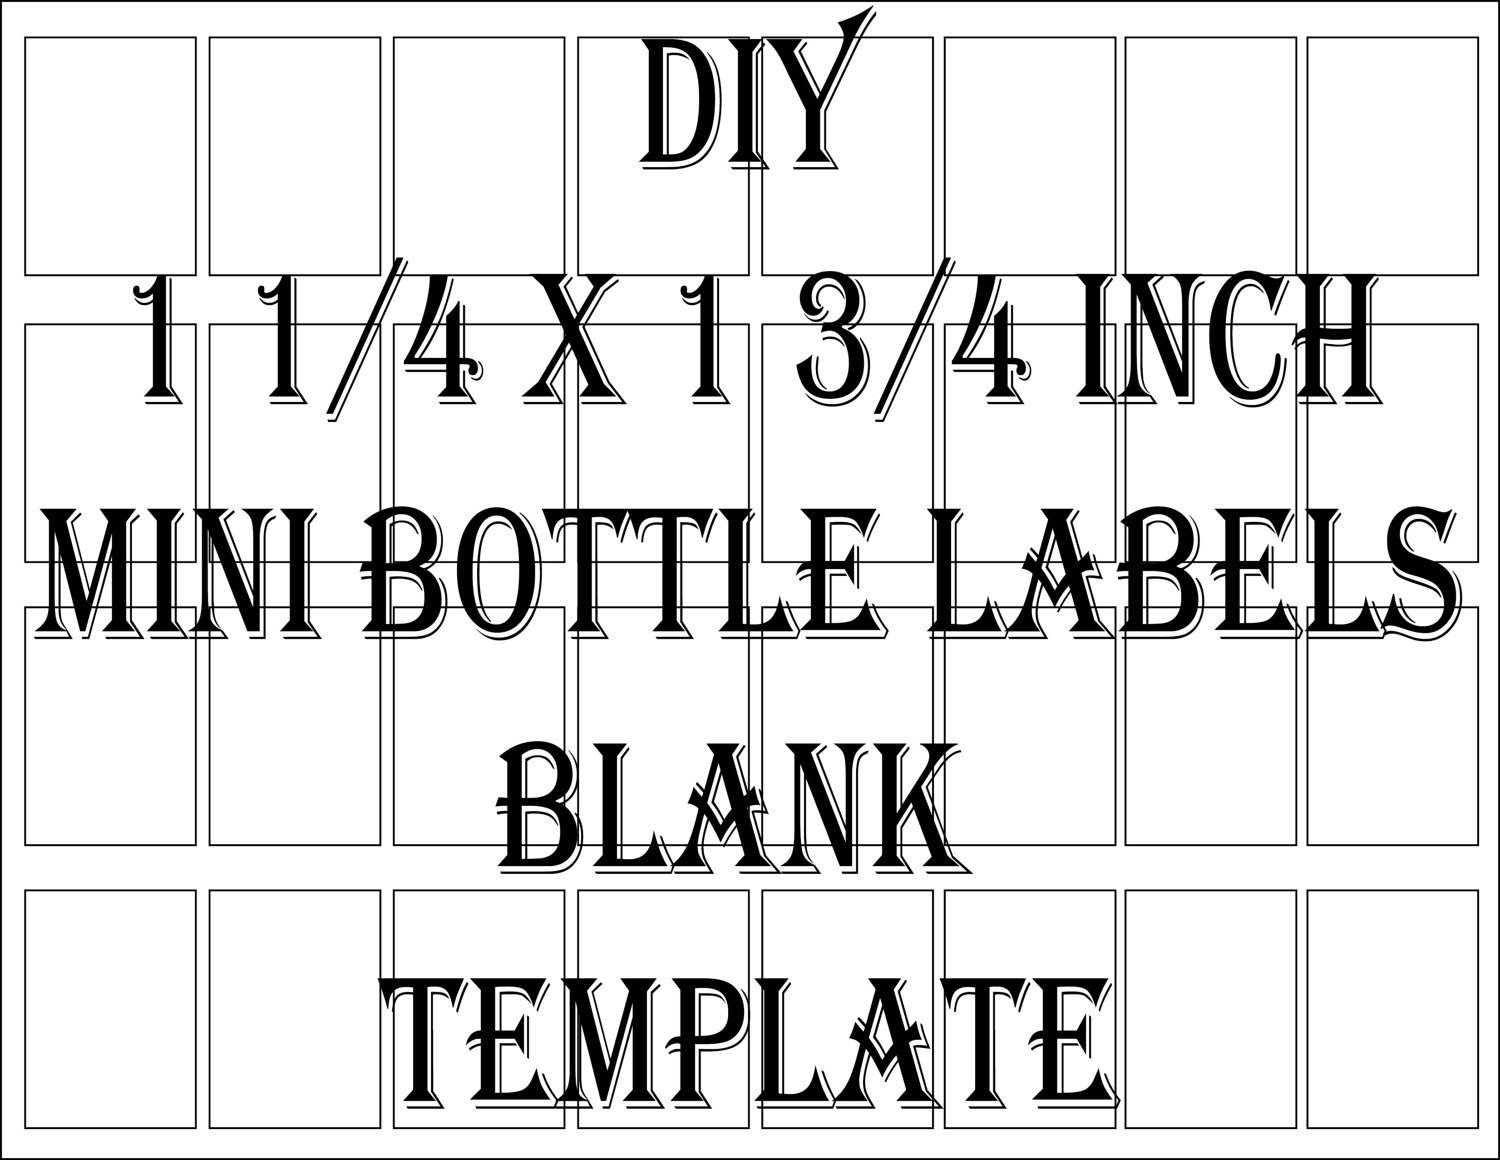 Liquor Bottle Labels Template Mini Liquor Bottle Label Template Printable 4 Files 24 Diy 1